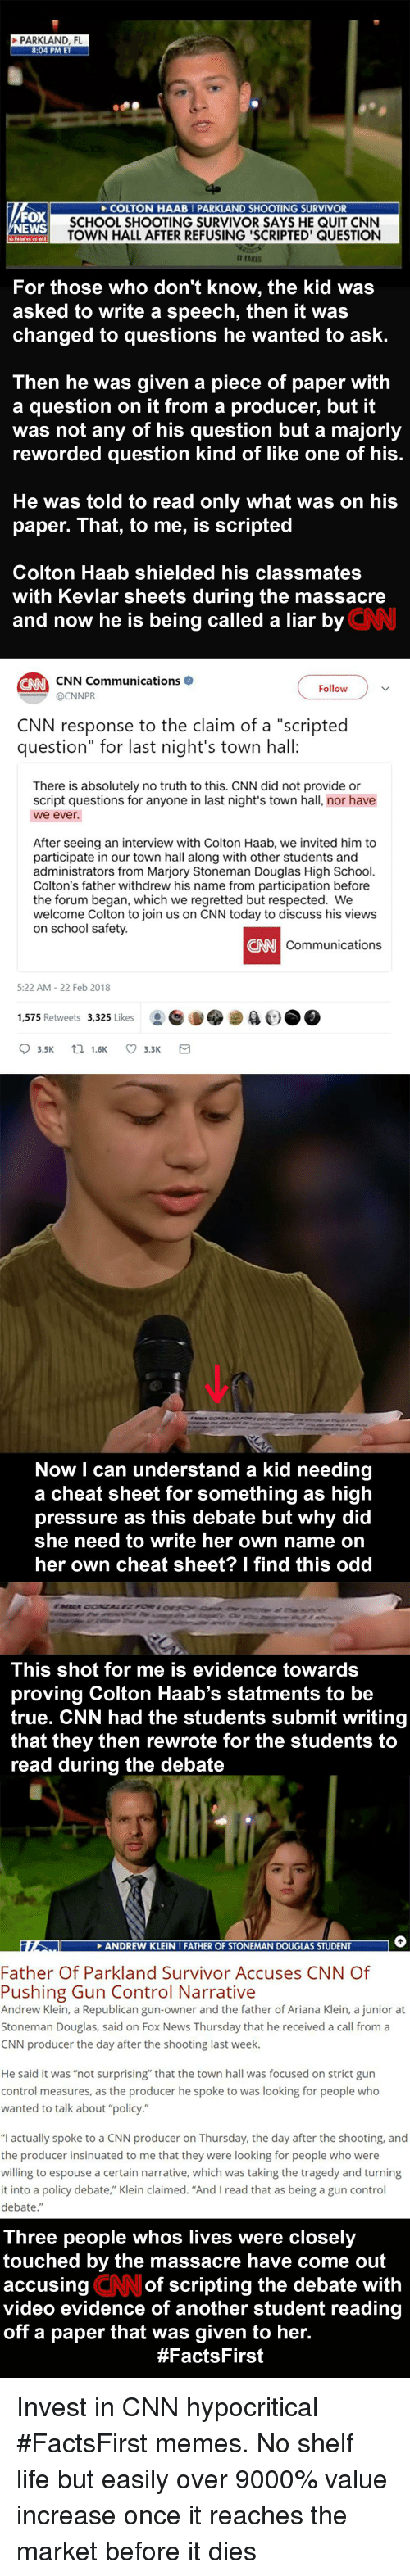 """cnn.com, Life, and Memes: N HAAB PARKLAND SHOOTING SURVIVOR  SCHOOL SHOOTING SURVIVOR SAYS HE QUIT CNN  TOWN HALL AFTER REFUSING 'SCRIPTED' QUESTION  WS  T TAKES  For those who don't know, the kid was  asked to write a speech, then it was  changed to questions he wanted to ask.  Then he was given a piece of paper with  a question on it from a producer, but it  was not any of his question but a majorly  reworded question kind of like one of his  He was told to read only what was on his  paper. That, to me, is scripted  Colton Haab shielded his classmates  with Kevlar sheets during the massacre  and now he is being called a liar by  CNN  Follow  OCNNPR  CNN response to the claim of a """"scripted  question"""" for last night's town hall  There is absolutely no truth to this. CNN did not provide or  script questions for anyone in last night's town hall, nor have  we ever.  After seeing an interview with Colton Haab, we invited him to  participate in our town hall along with other students and  administrators from Marjory Stoneman Douglas High School.  Colton's father withdrew his name from participation before  the forum began, which we regretted but respected. We  welcome Colton to join us on CNN today to discuss his views  on school safety.  CNN  Communications  522 AM-22 Feb 2018  1,575 Retweets 3,325 Likes  t.)  Now I can understand a kid needing  a cheat sheet for something as high  pressure as this debate but why did  she need to write her own name on  her own cheat sheet? I find this odd  This shot for me is evidence towards  proving Colton Haab's statments to be  true. CNN had the students submit writing  that they then rewrote for the students to  be  they then tehe students  read during the debate  to  NDREW KLEI  Father Of Parkland Survivor Accuses CNN Of  Pushing Gun Control Narrative  Andrew Klein, a Republican gun-owner and the father of Ariana Klein, a junior at  Stoneman Douglas, said on Fox News Thursday that he received a call from a  CNN producer the day a"""